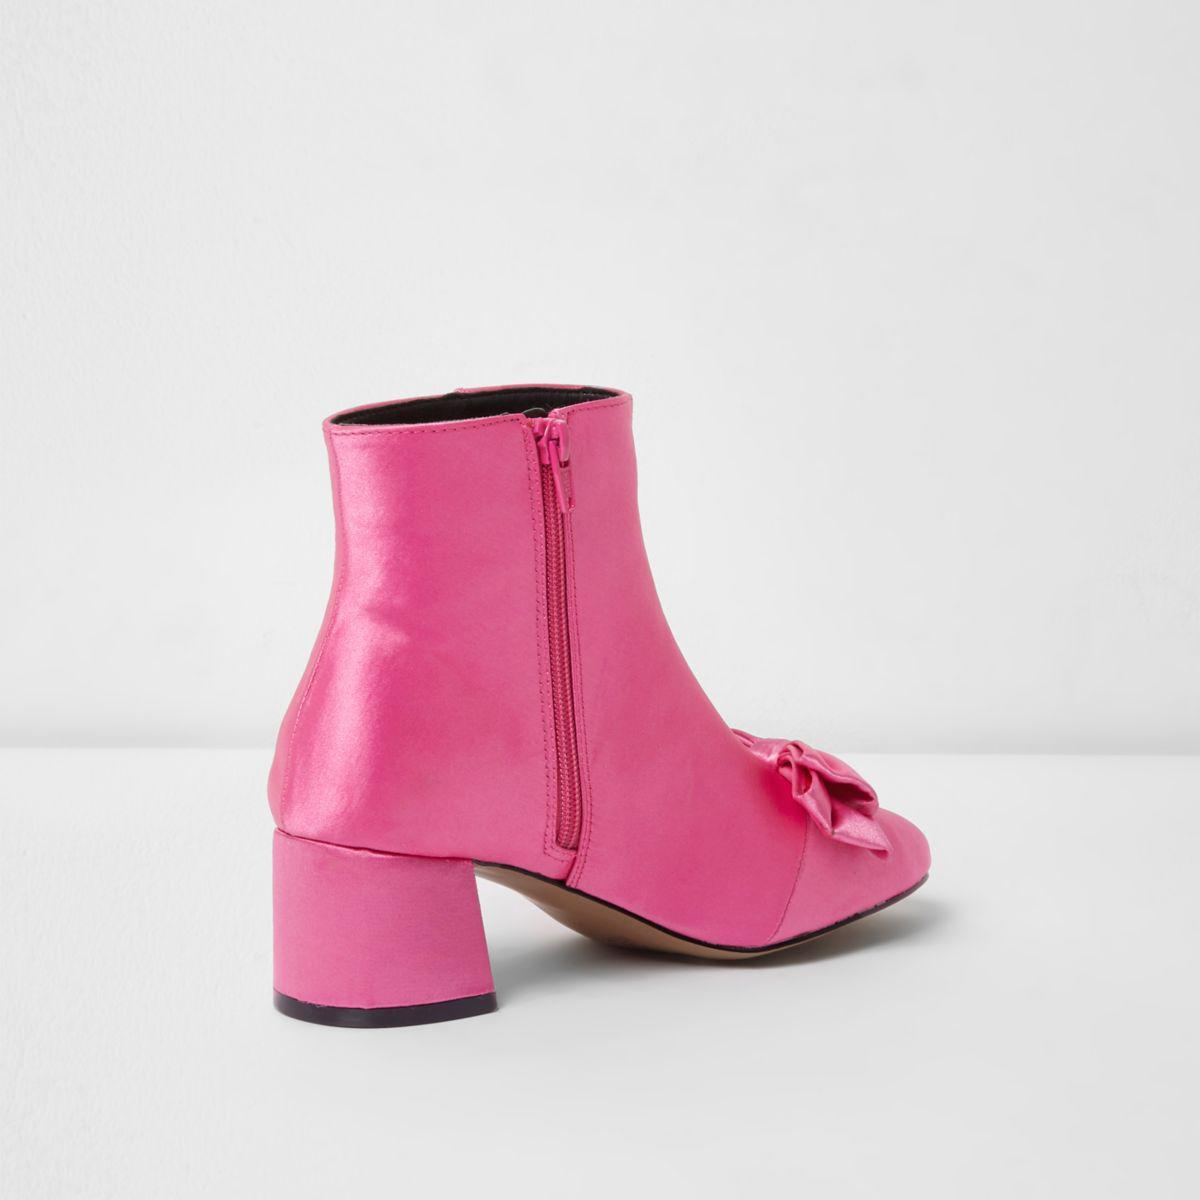 e42666d8f05 Pink Heeled Ankle Boots Related Keywords & Suggestions - Pink Heeled ...